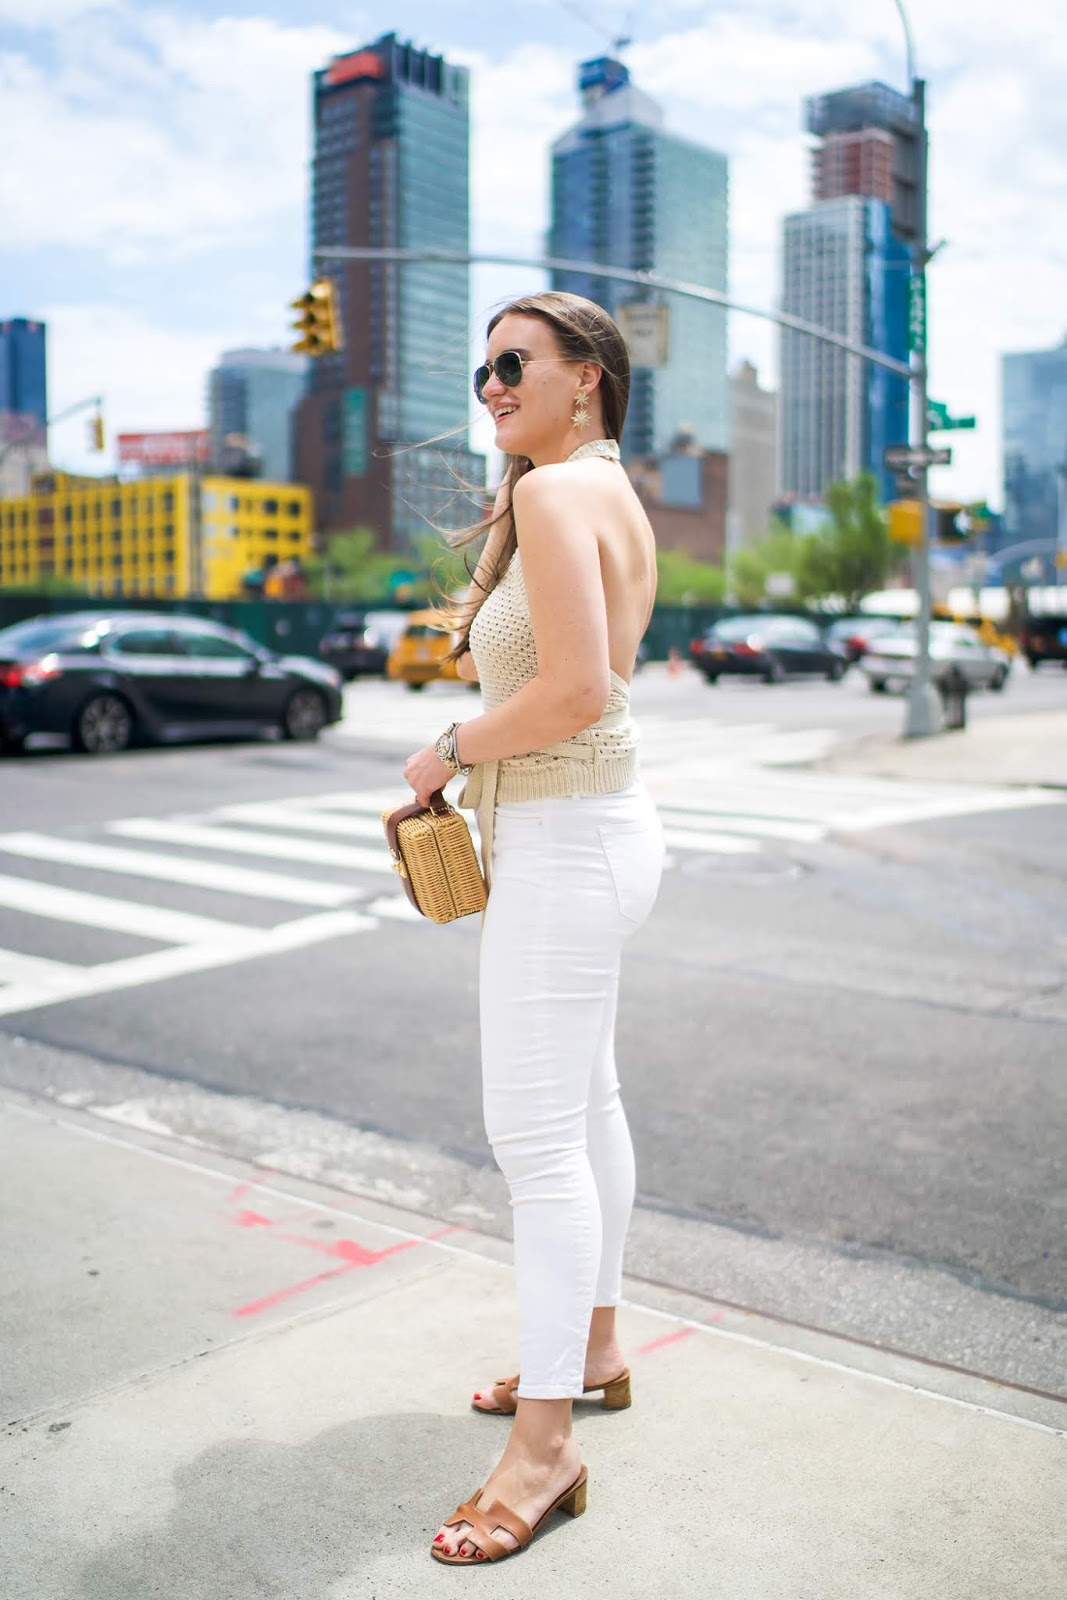 Hermes Sandals styled by popular New York fashion blogger, Covering the Bases